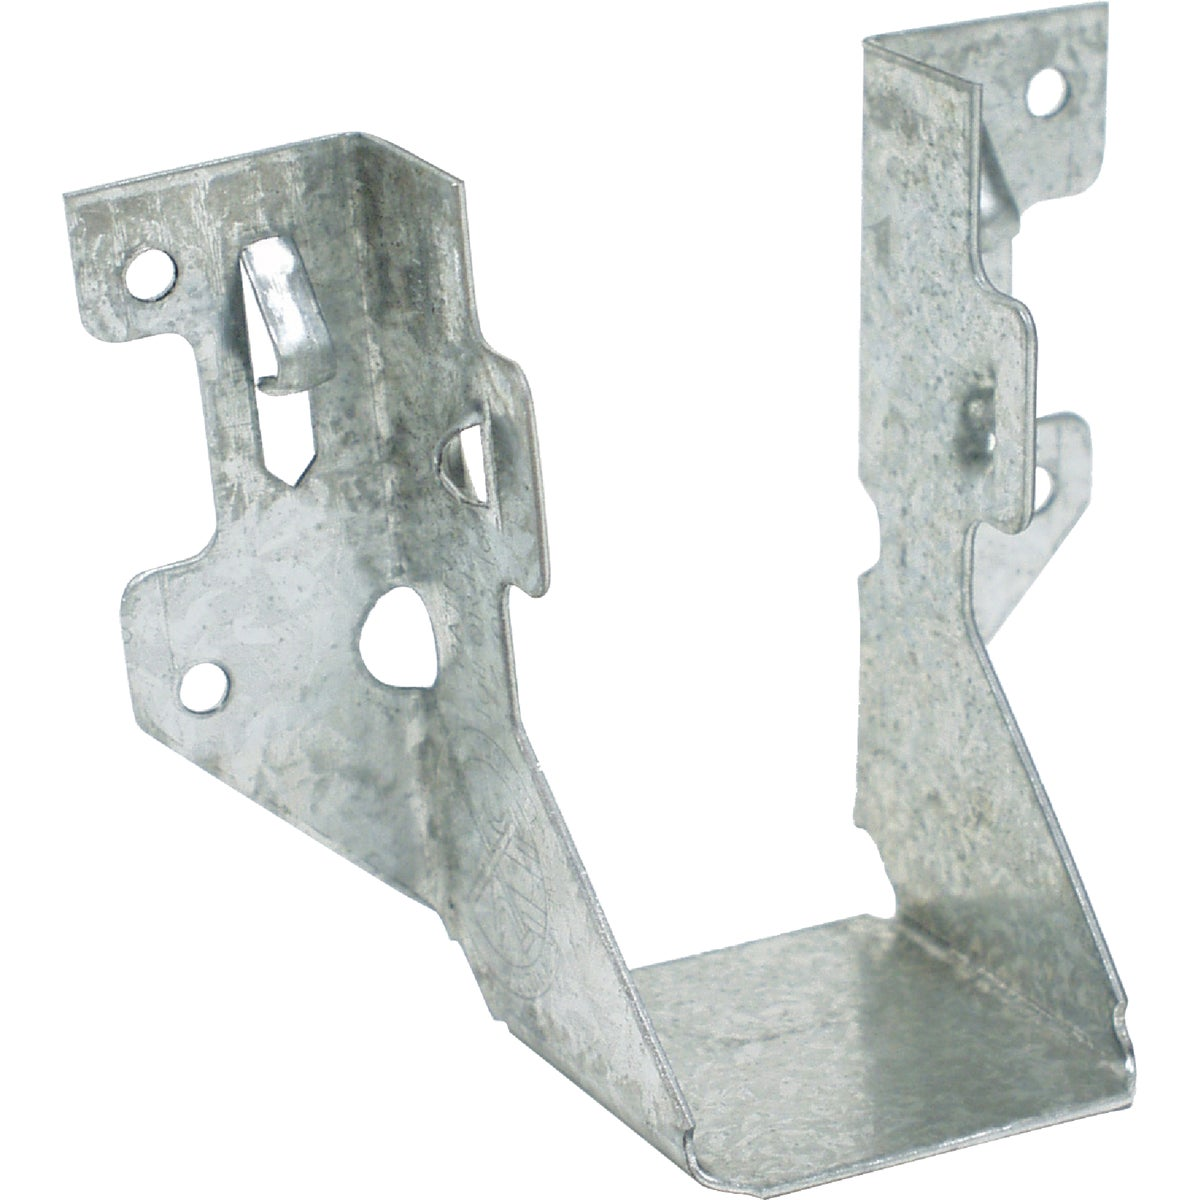 2X4 JOIST HANGER - LUS24 by Simpson Strong Tie